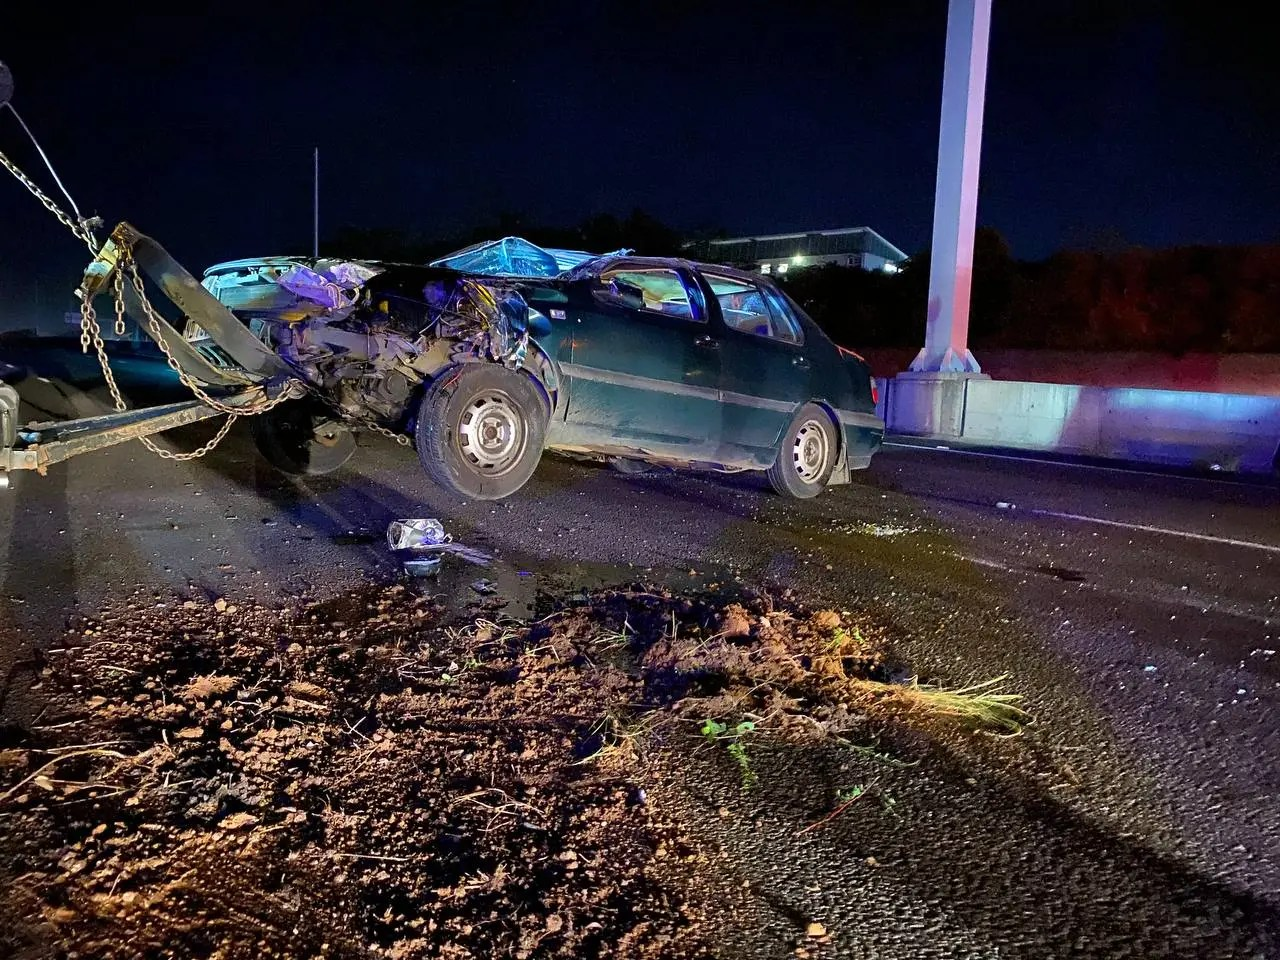 One person injured in M41 rollover